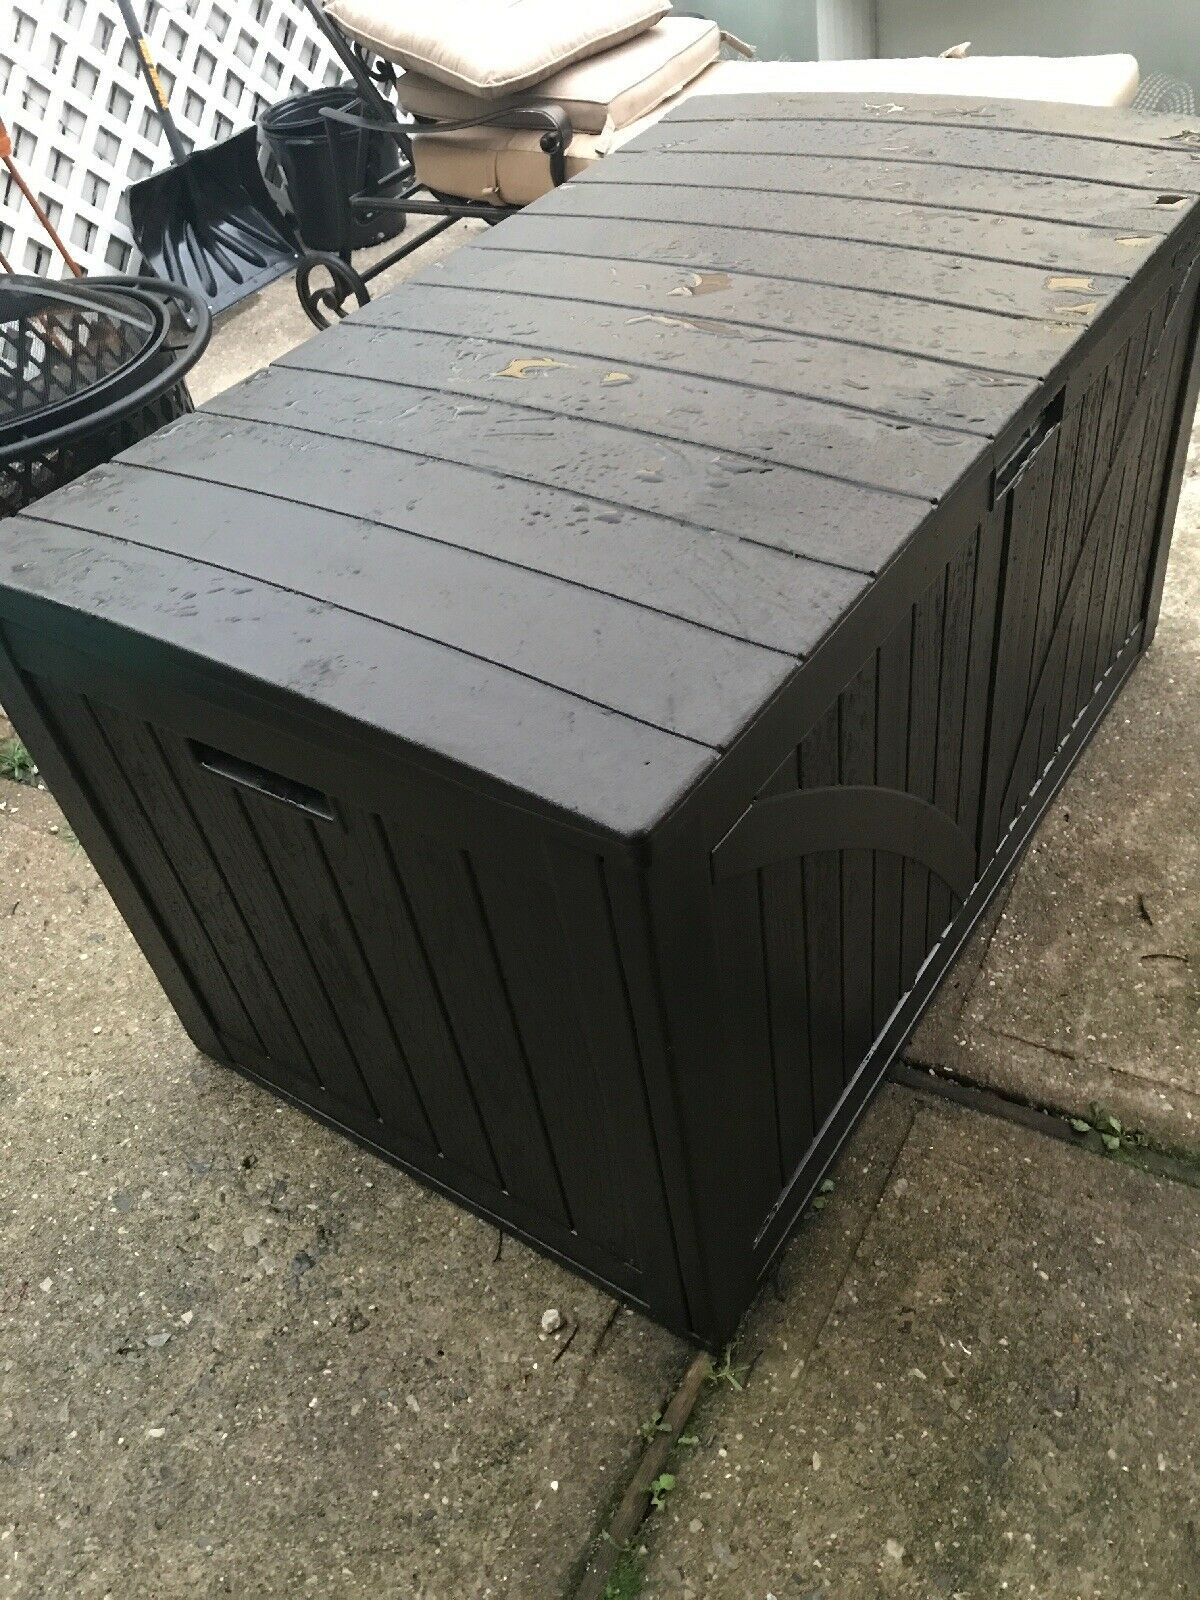 Outdoor Storage Deck Box Outdoor Storage Ideas Of Outdoor Storage Outdoorstorage Outdoor Deck Storage Box Patio Cushions Outdoor Patio Storage